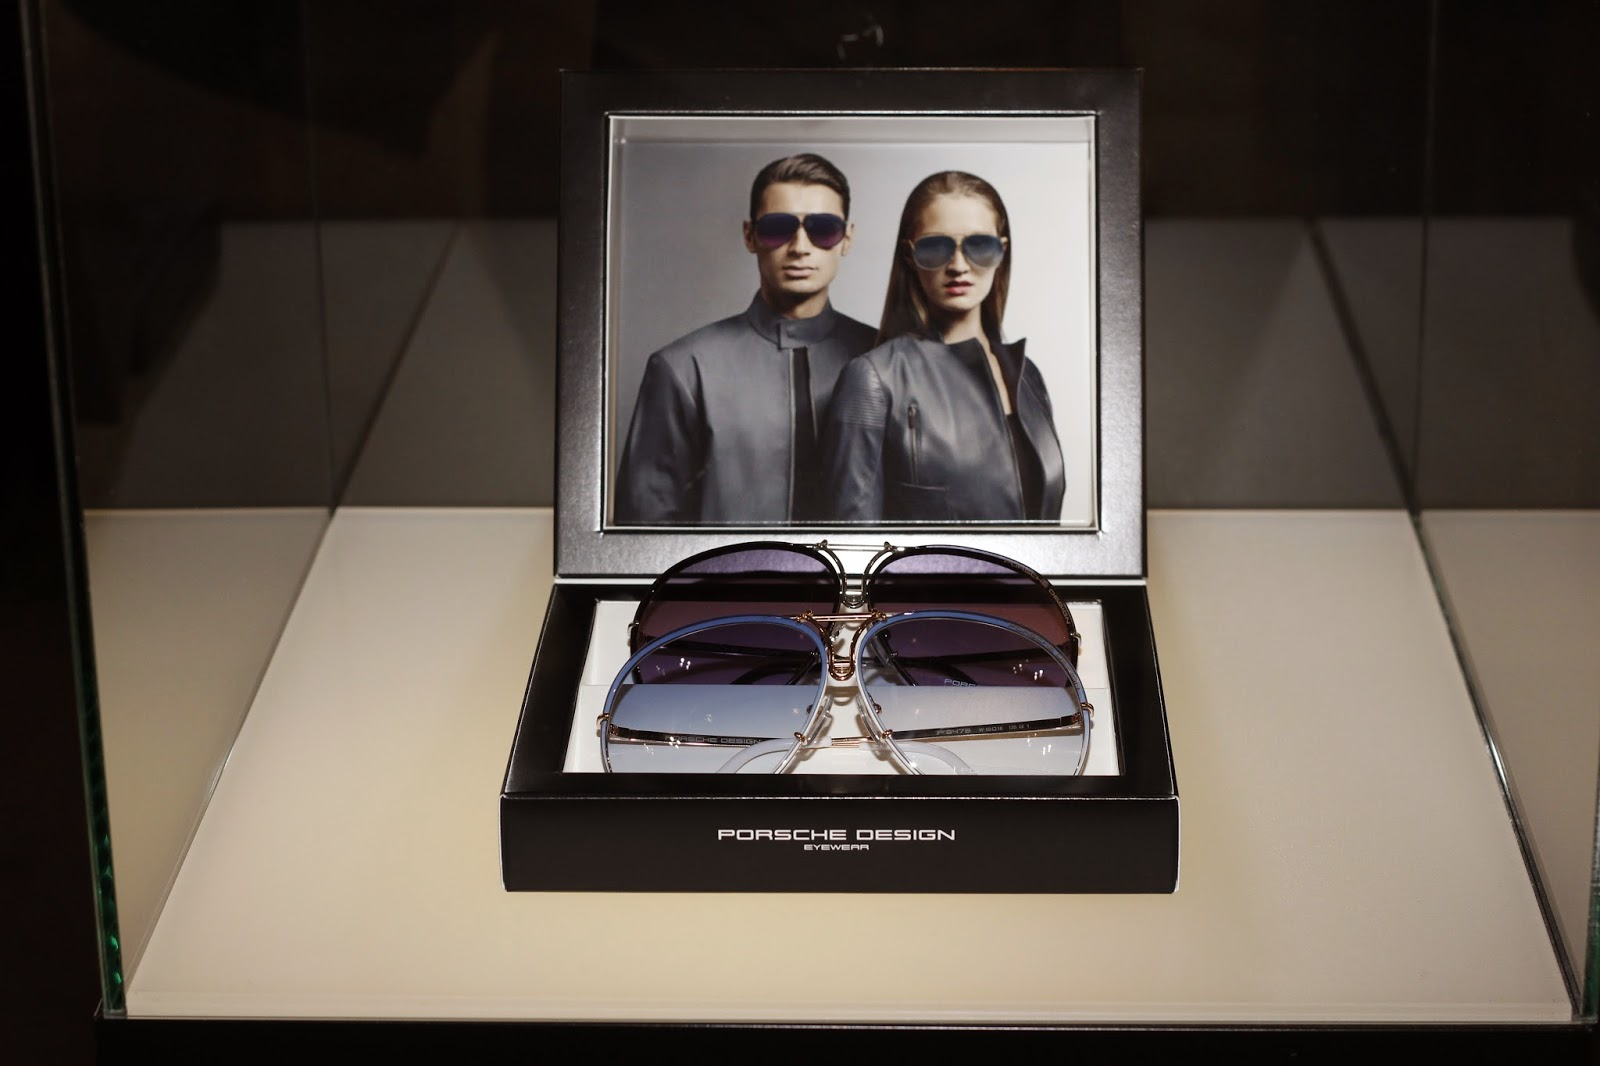 porsche design, rodenstock, iconic party, mido 2014, one more addiction